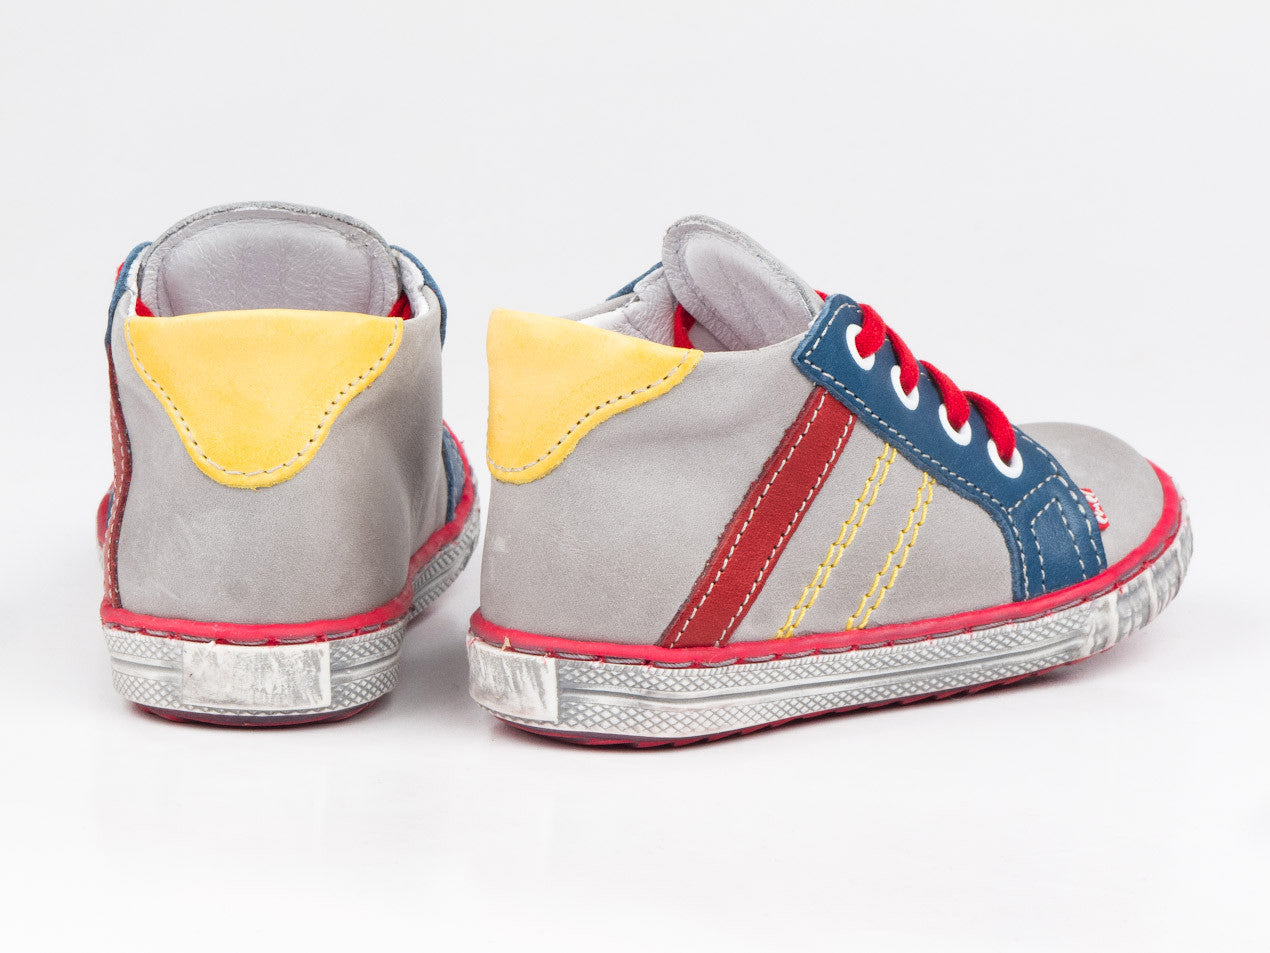 dd9fe658f Emel Grey/Red/Navy Leather Lace Up Trainers - Emel Shoes UK